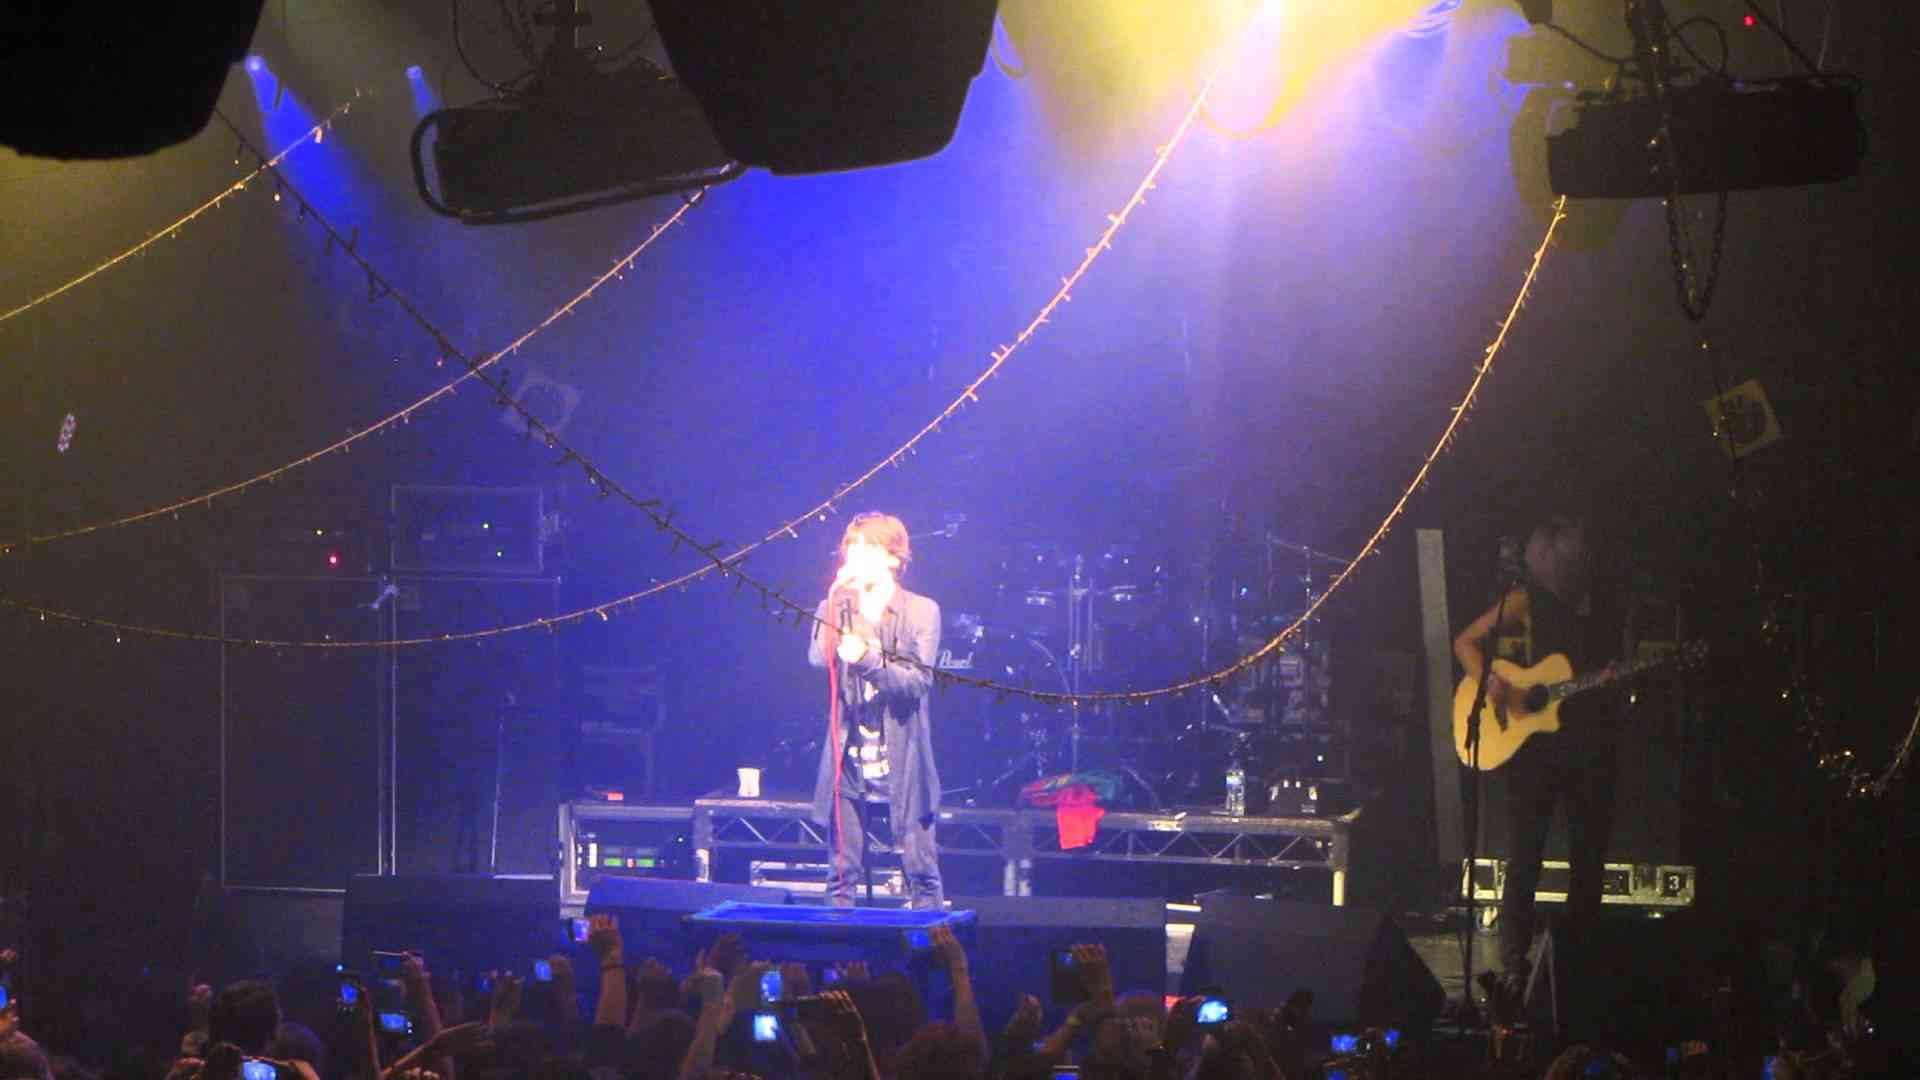 Wherever You Are - ONE OK ROCK live in London 2014 - YouTube